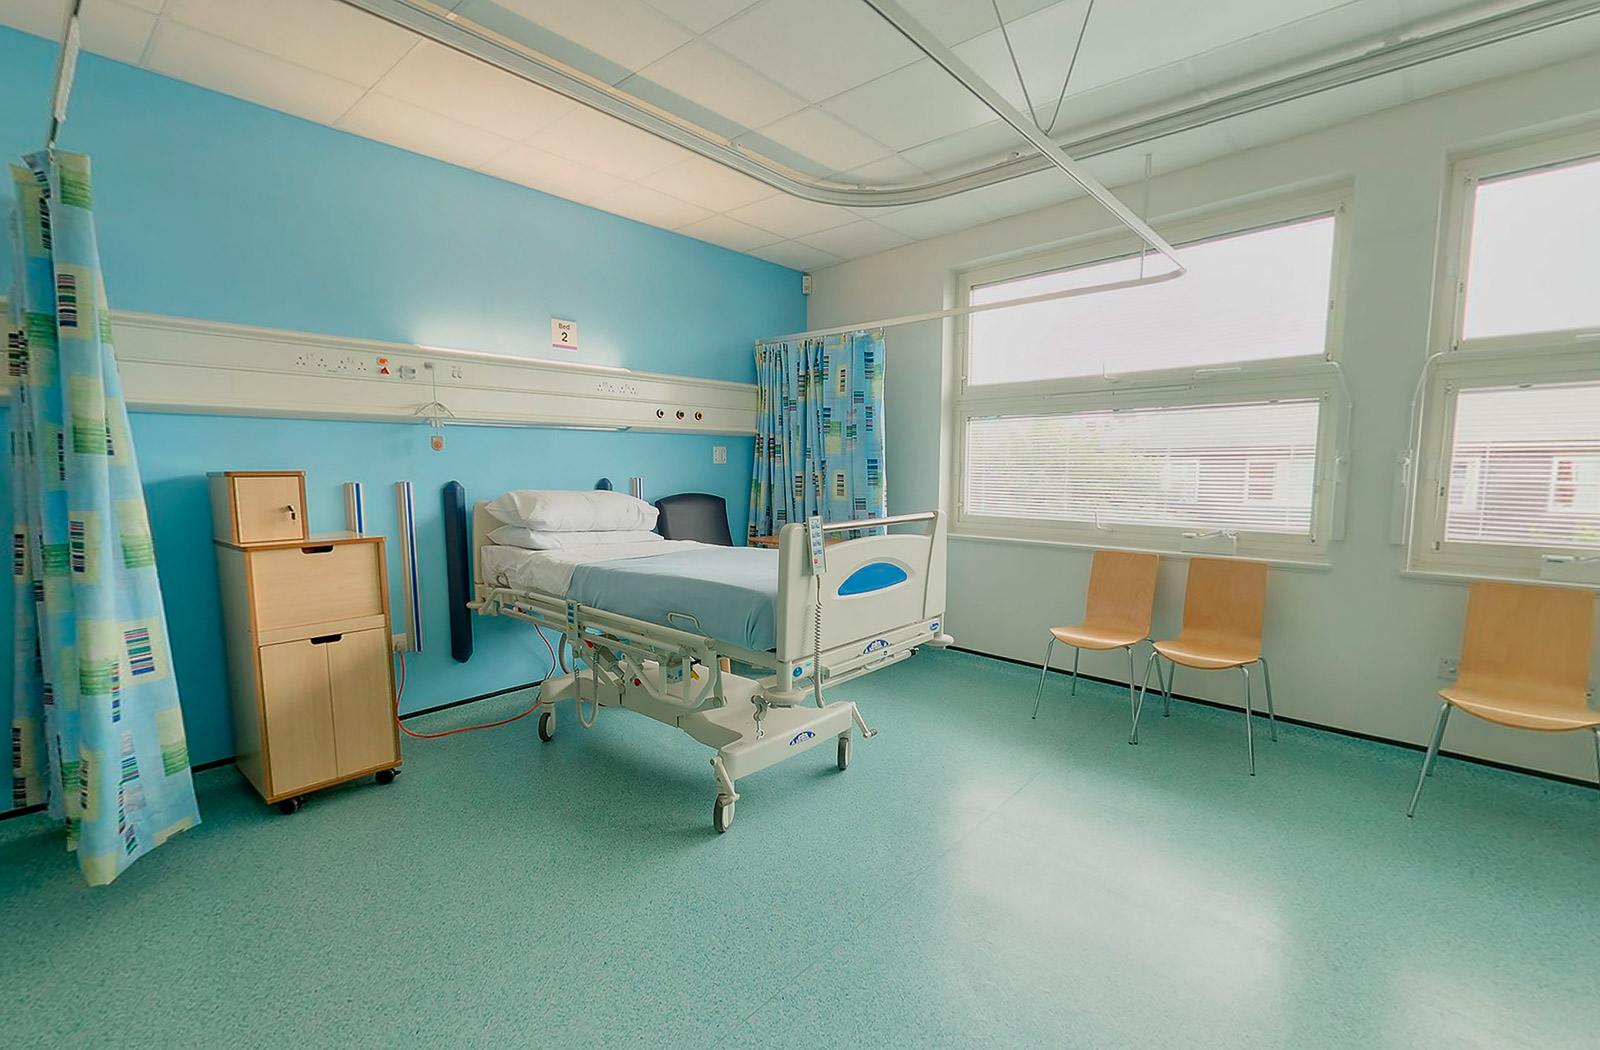 NHS Kingston Hospital Virtual Tour